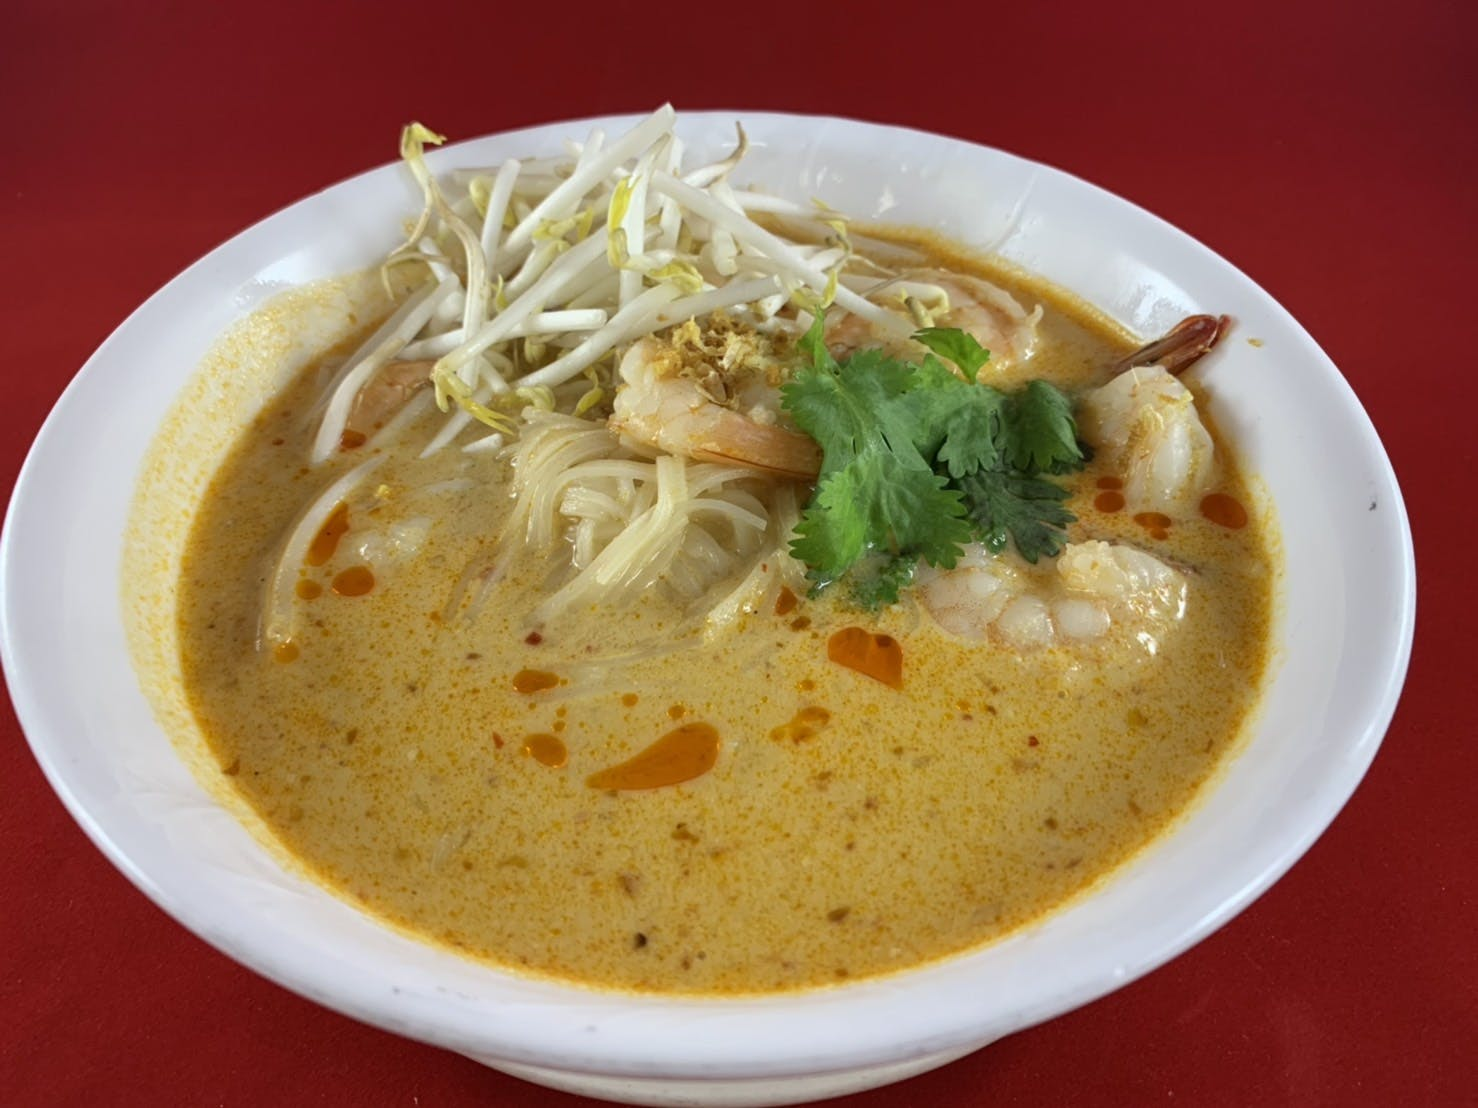 39. Guey Tuey Tom Kha (Dinner) from Sa-Bai Thong - University Ave in Madison, WI